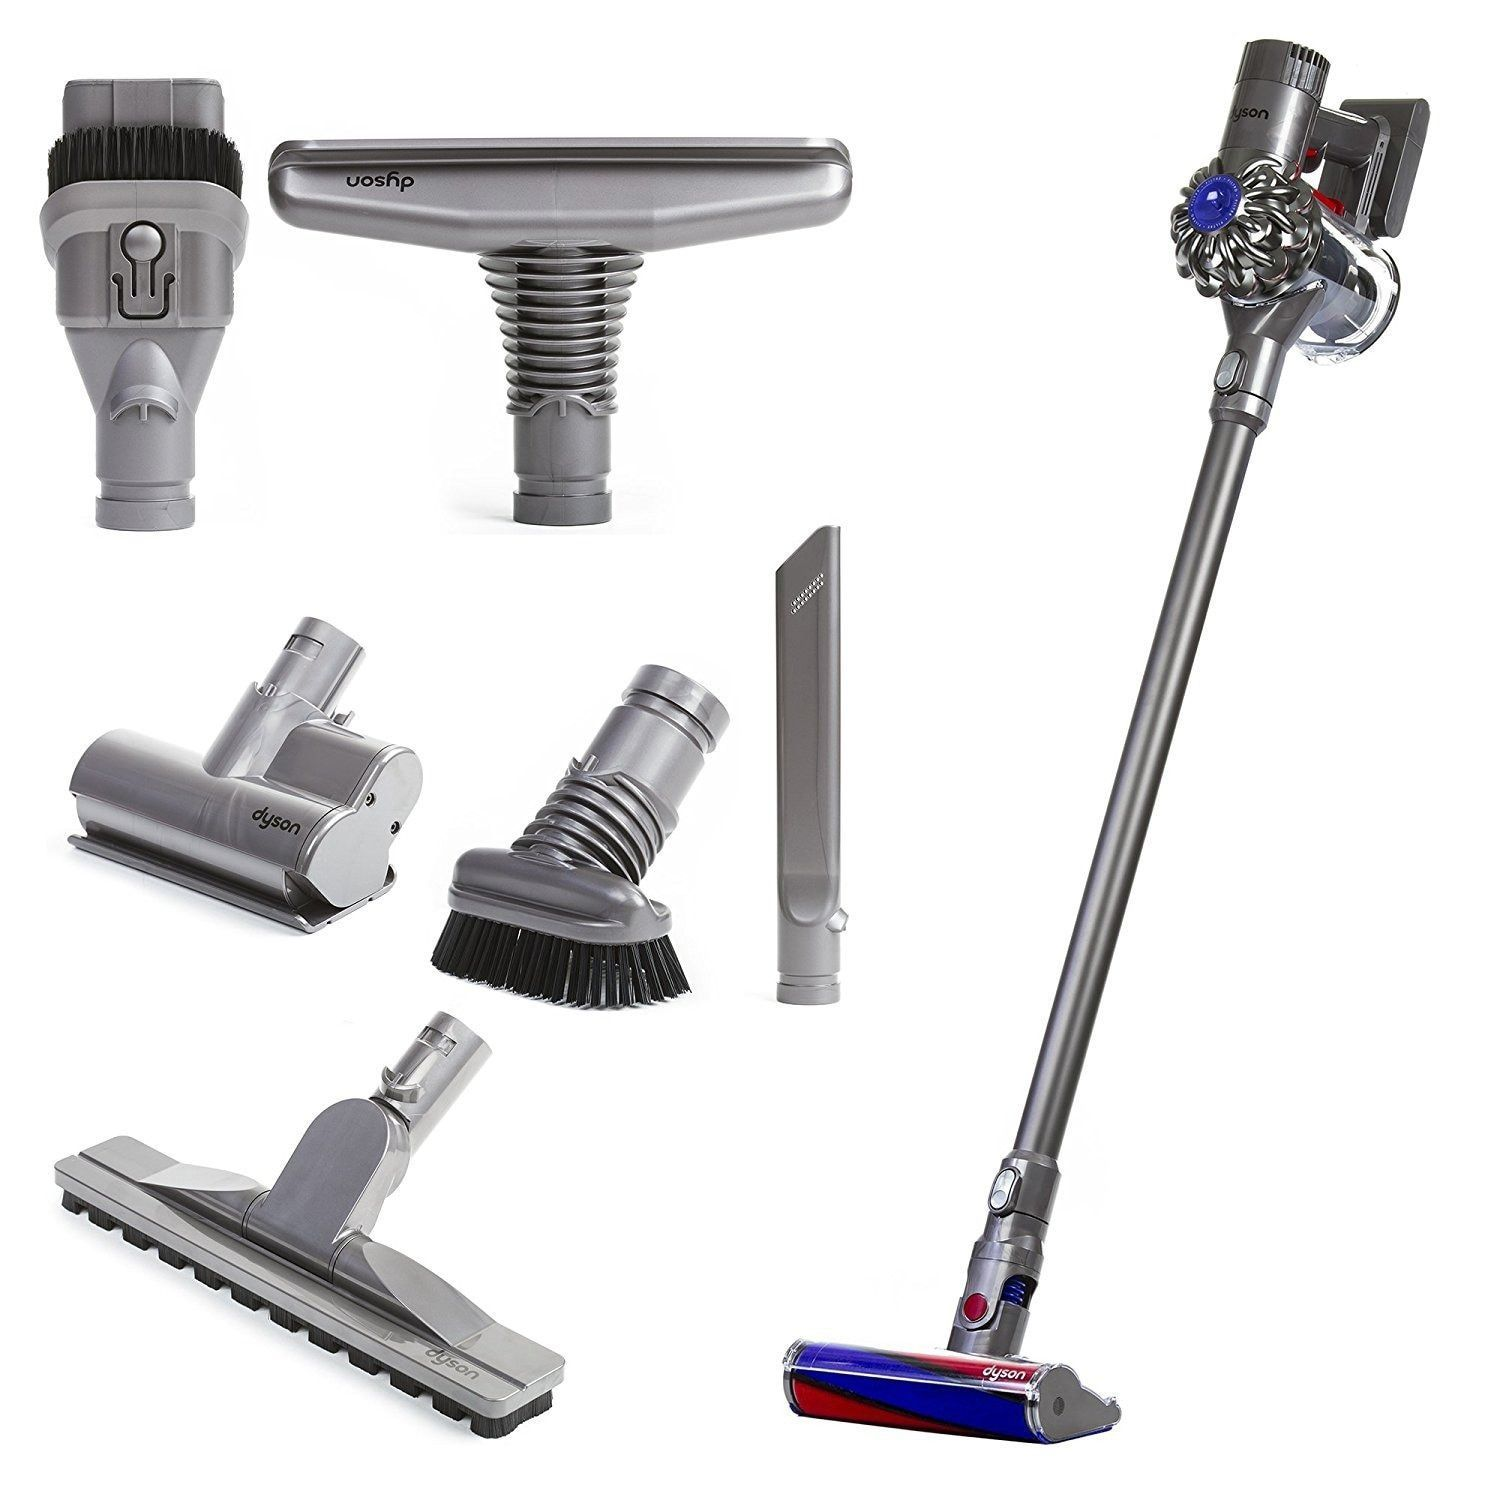 vacuum with cleaners extraordinary for cleaner hardwood metalic red best attractive floors tile from dyson attachment floor stick product